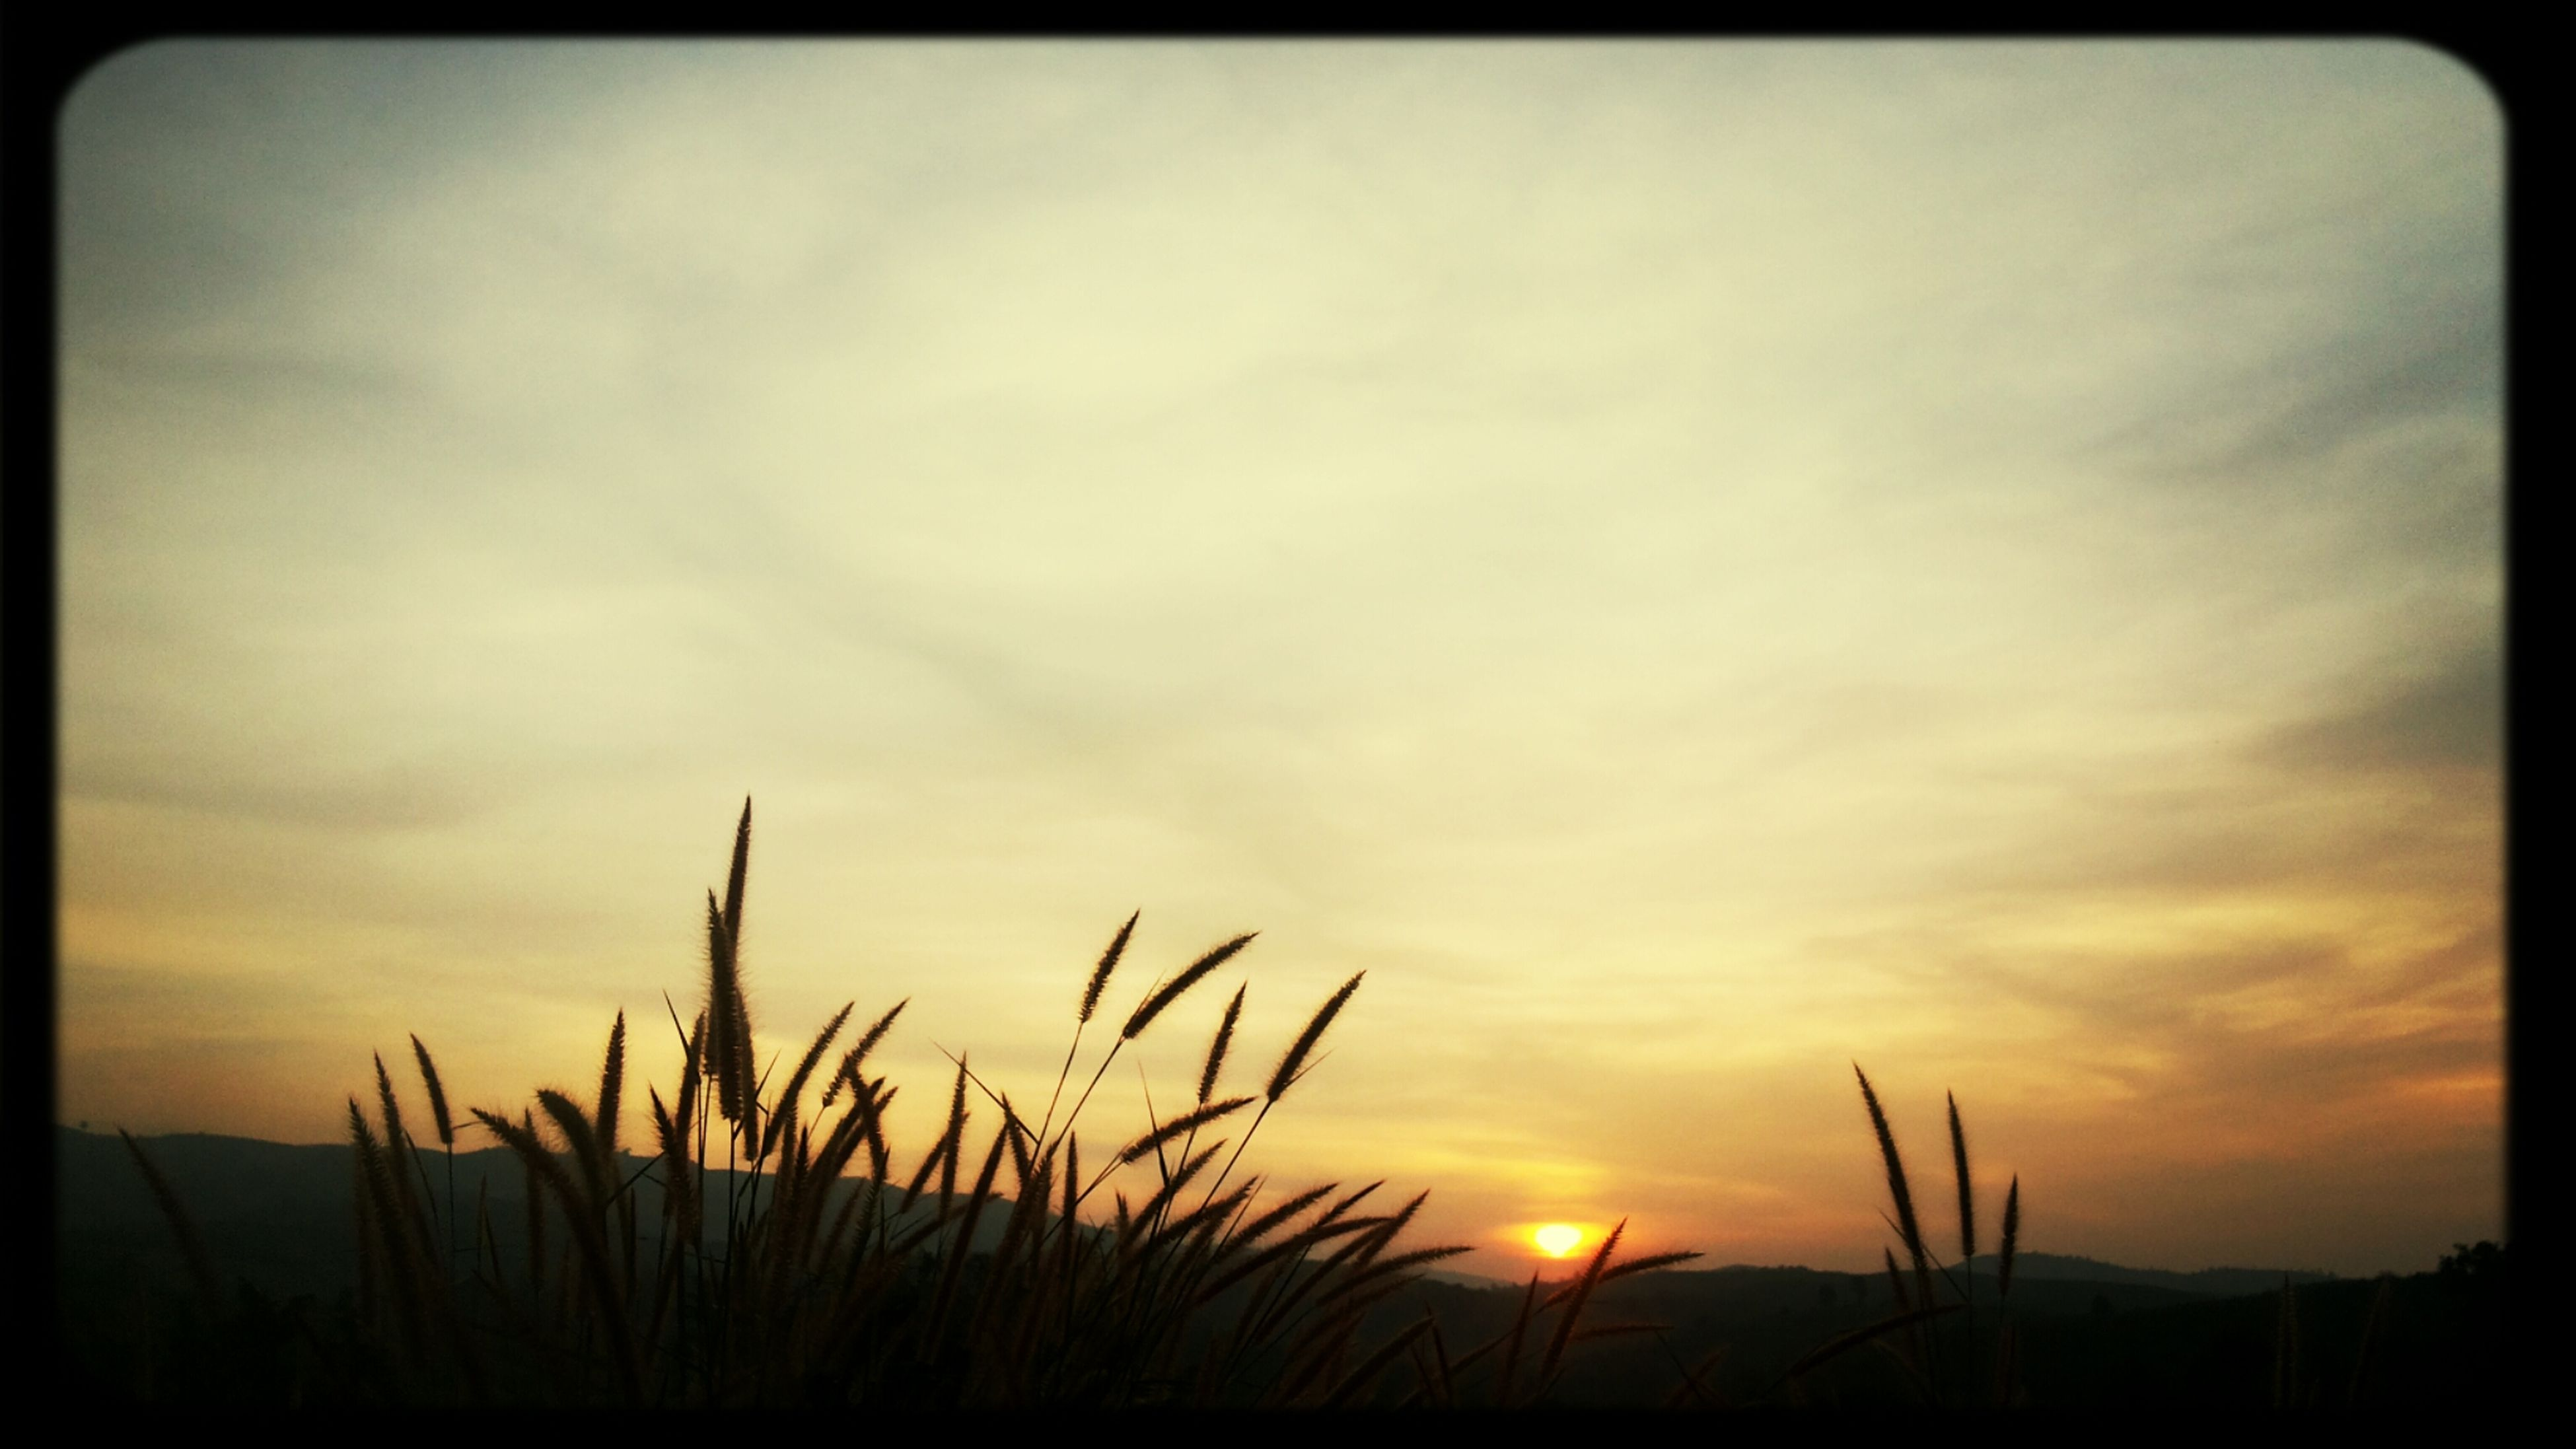 sunset, sky, silhouette, sun, beauty in nature, tranquil scene, tranquility, scenics, orange color, nature, plant, cloud - sky, idyllic, growth, cloud, outdoors, dramatic sky, auto post production filter, sunlight, no people